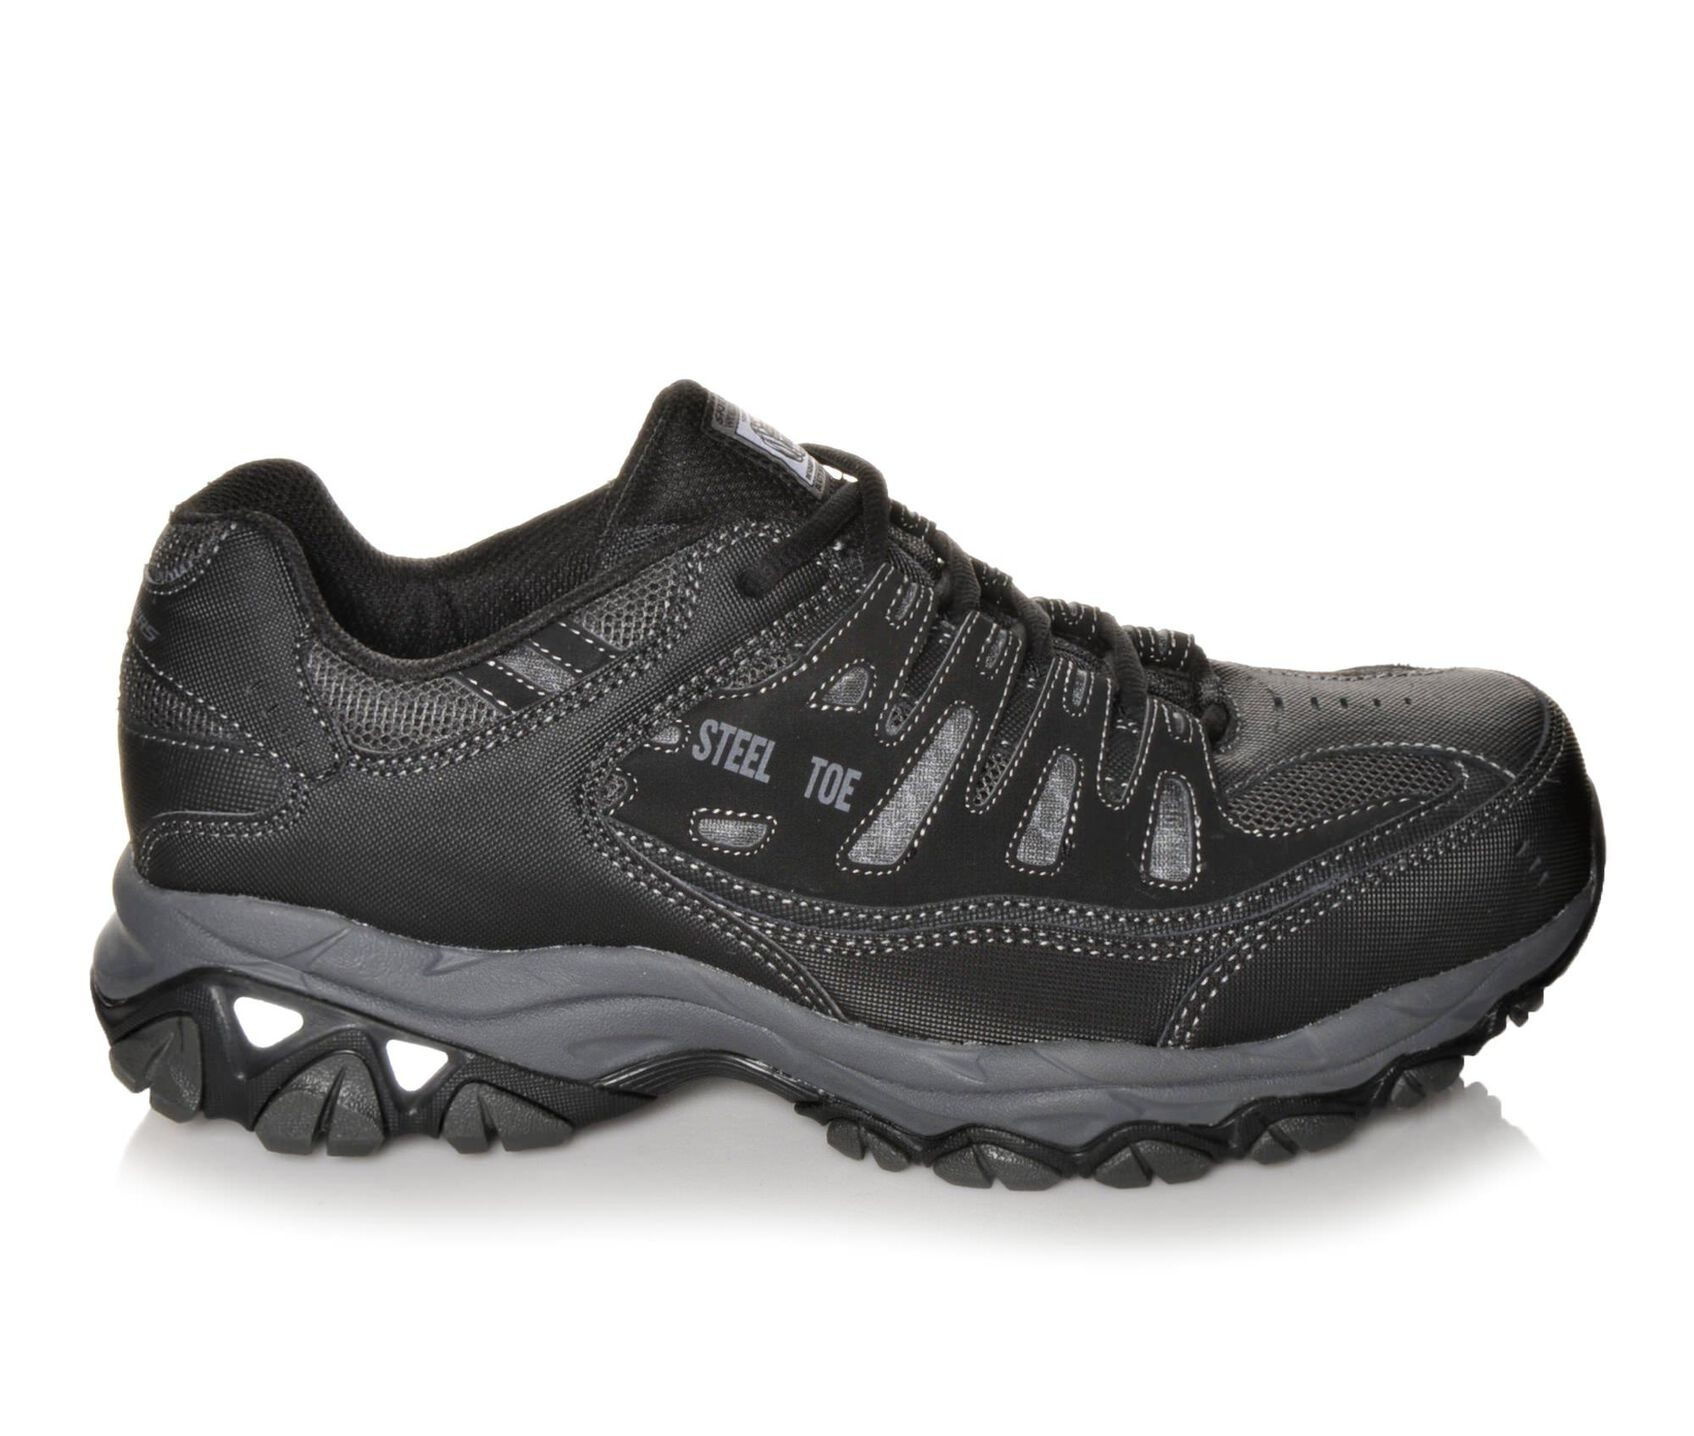 8aed08e98cbc Men s Skechers Work 77055 Cankton Work Shoes